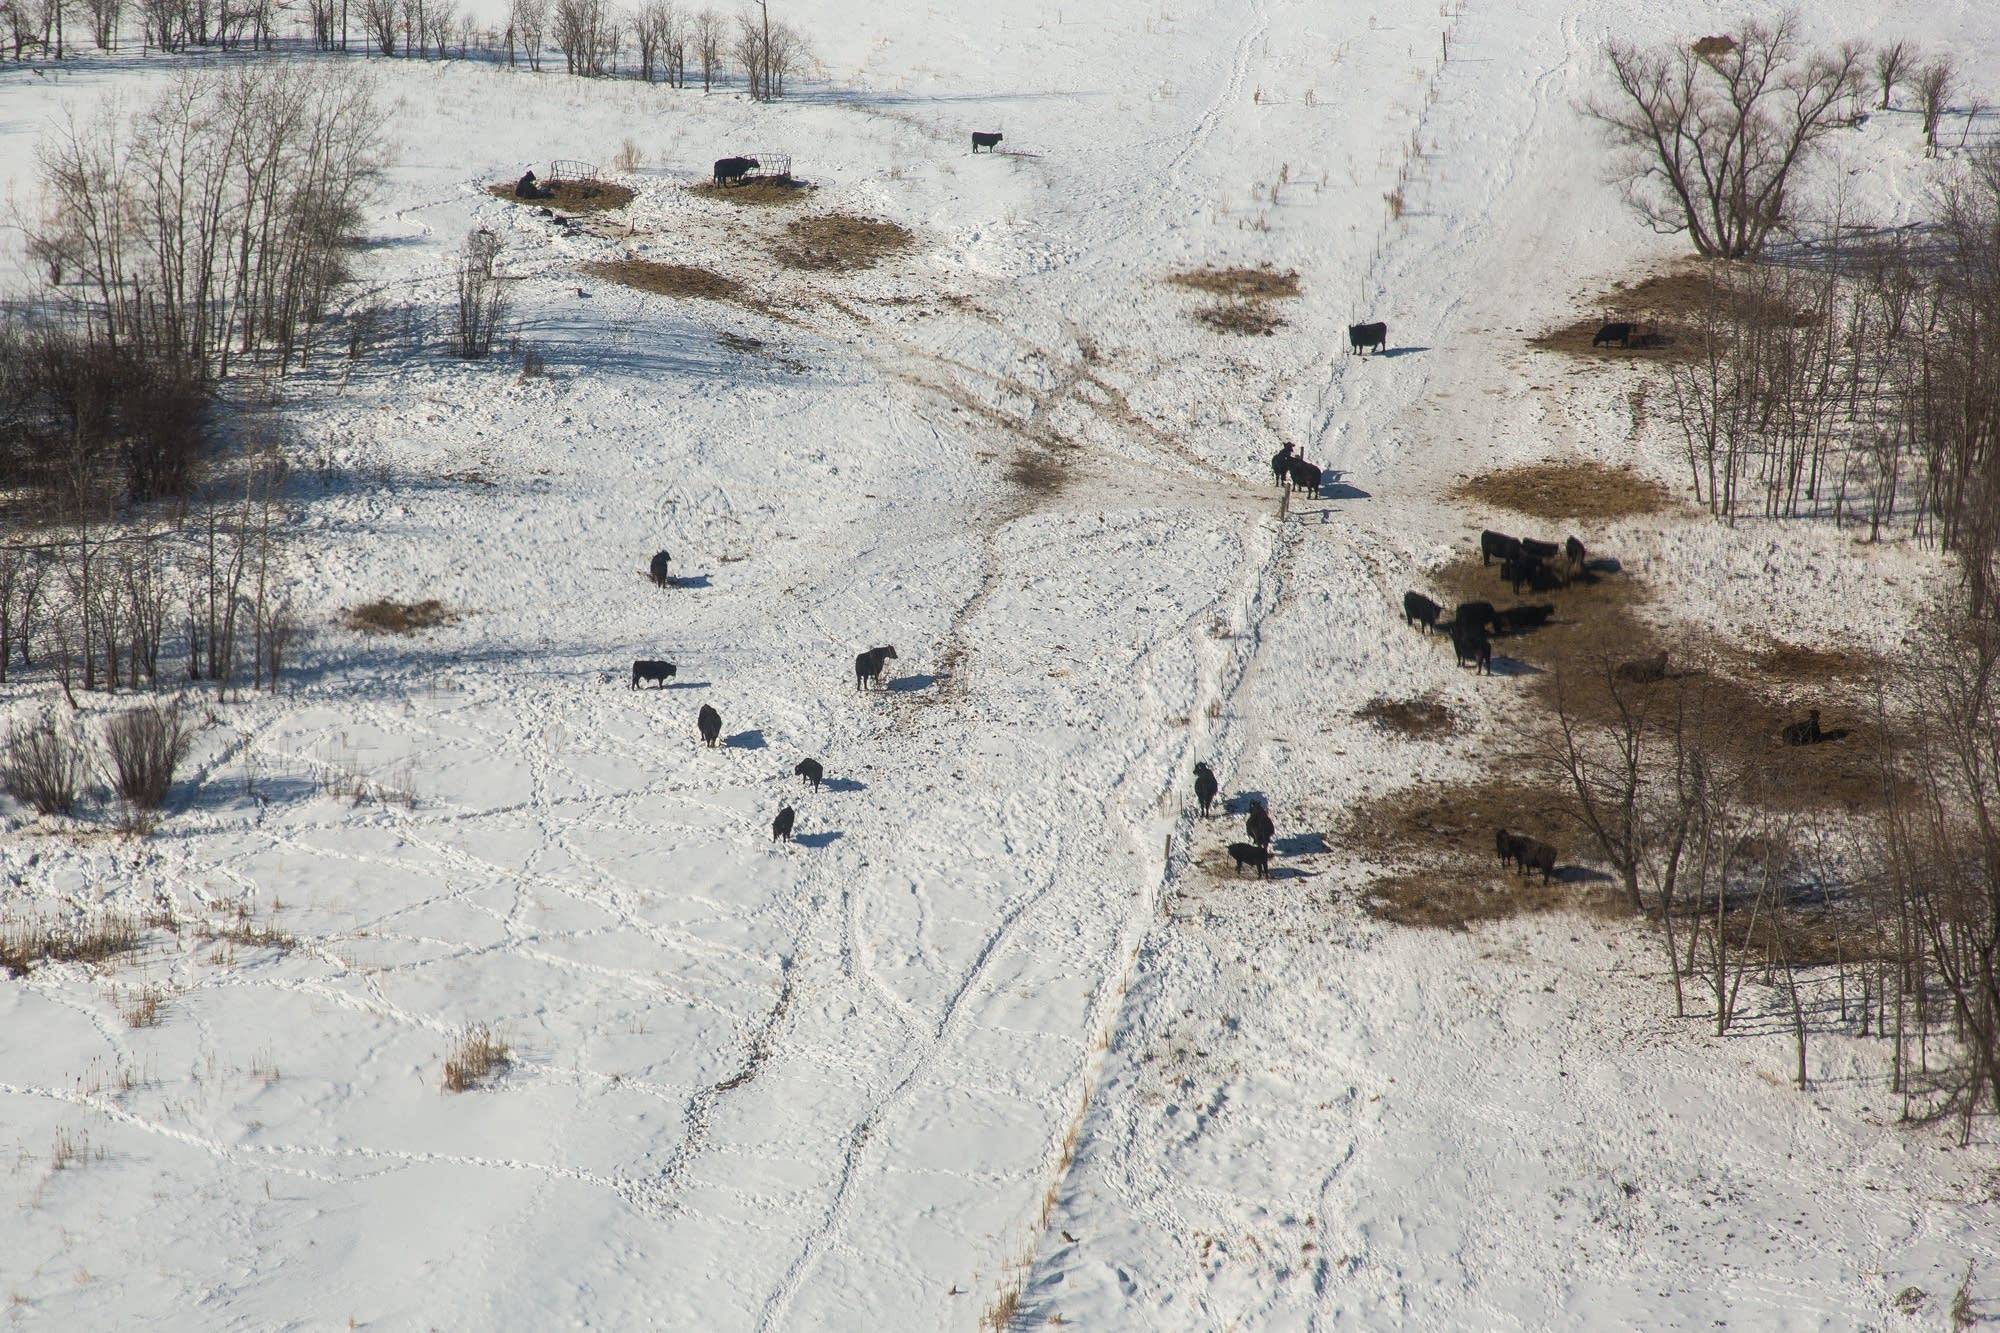 Cattle graze over a section where Enbridge's Line 3 is buried.